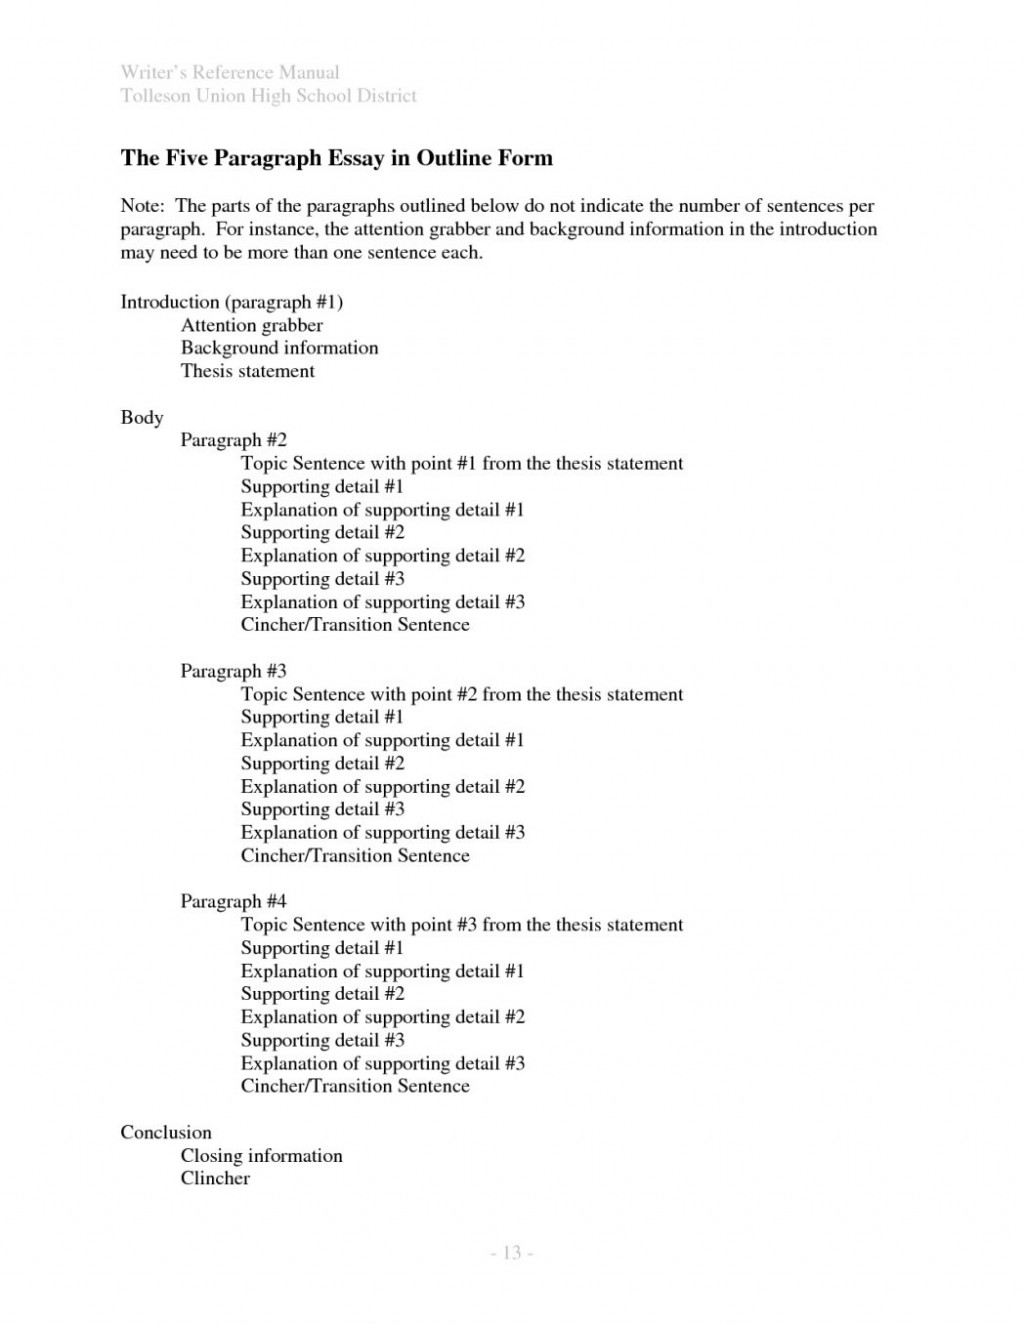 009 Research Paper An Outline For Argumentative Essay Abortion Inside High School How To Write Beautiful A Good Mla Apa History Large